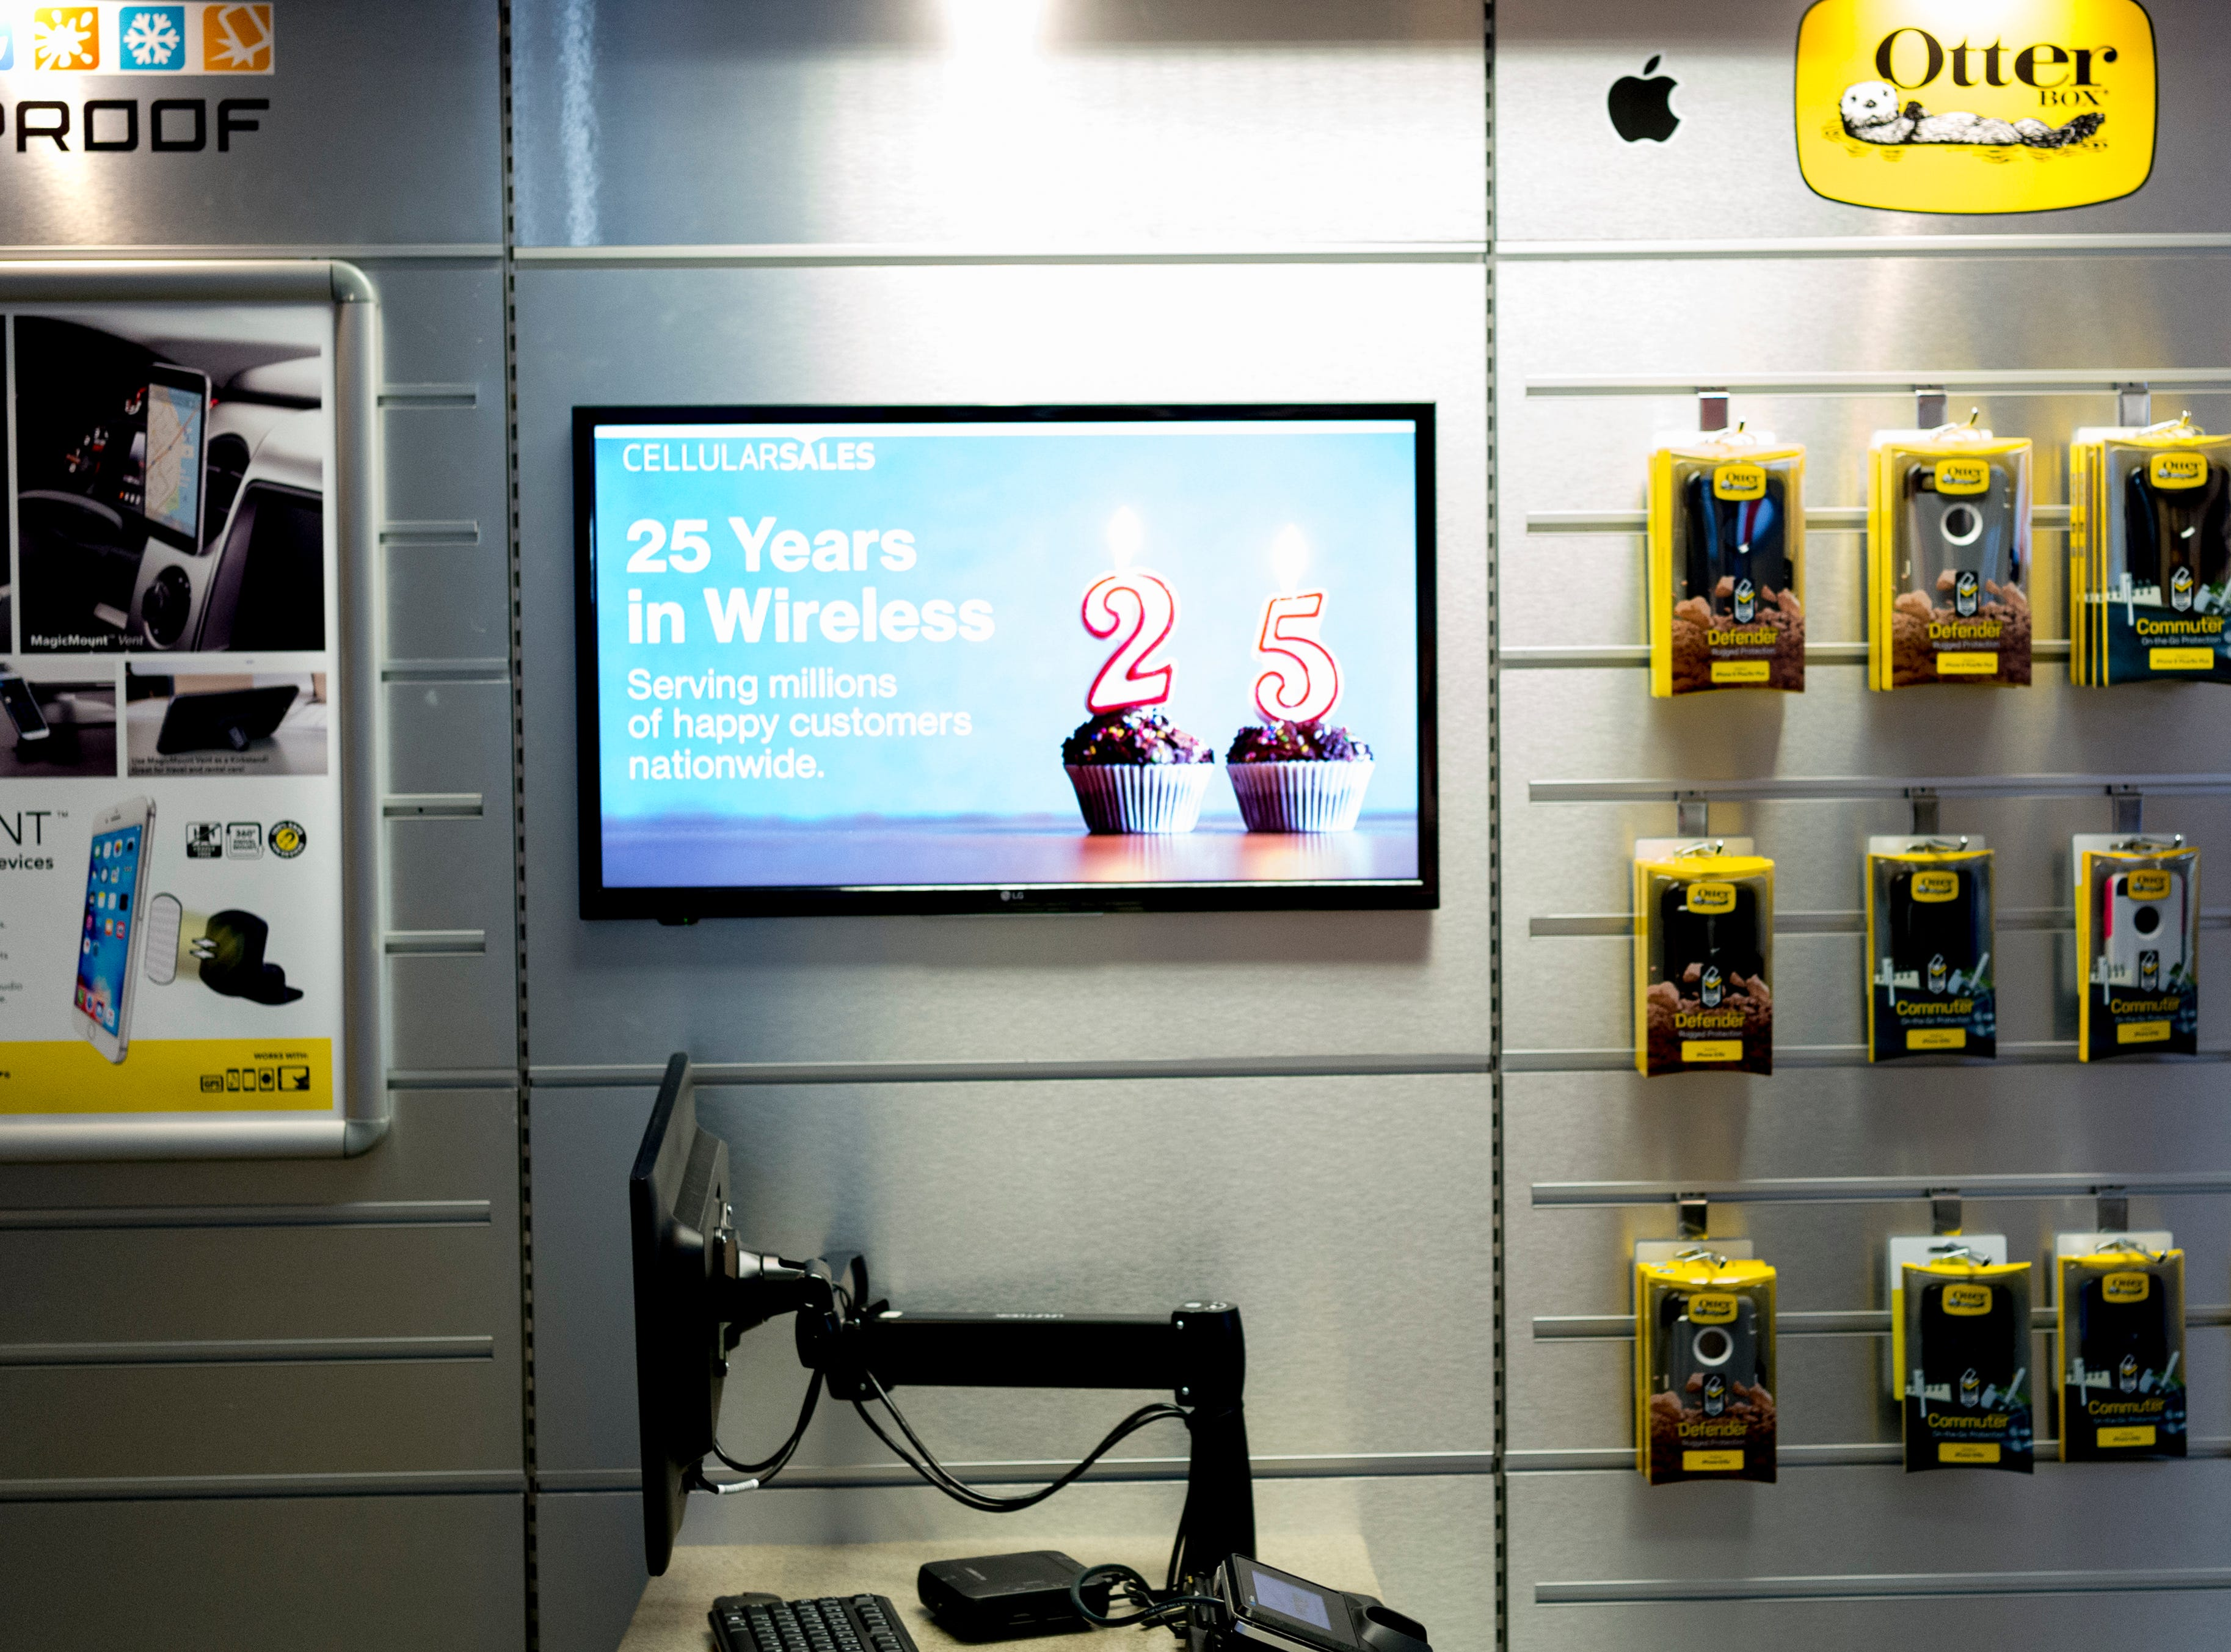 A sales computer in the mock setup of a Verizon Wireless retail store inside the Cellular Sales headquarters on 9040 Executive Park Drive in West Knoxville, Tennessee on Wednesday, January 16, 2019. An authorized agent of Verizon Wireless, Cellular Sales specializes in retail and support for over 700 of Verizon stores in 42 states.